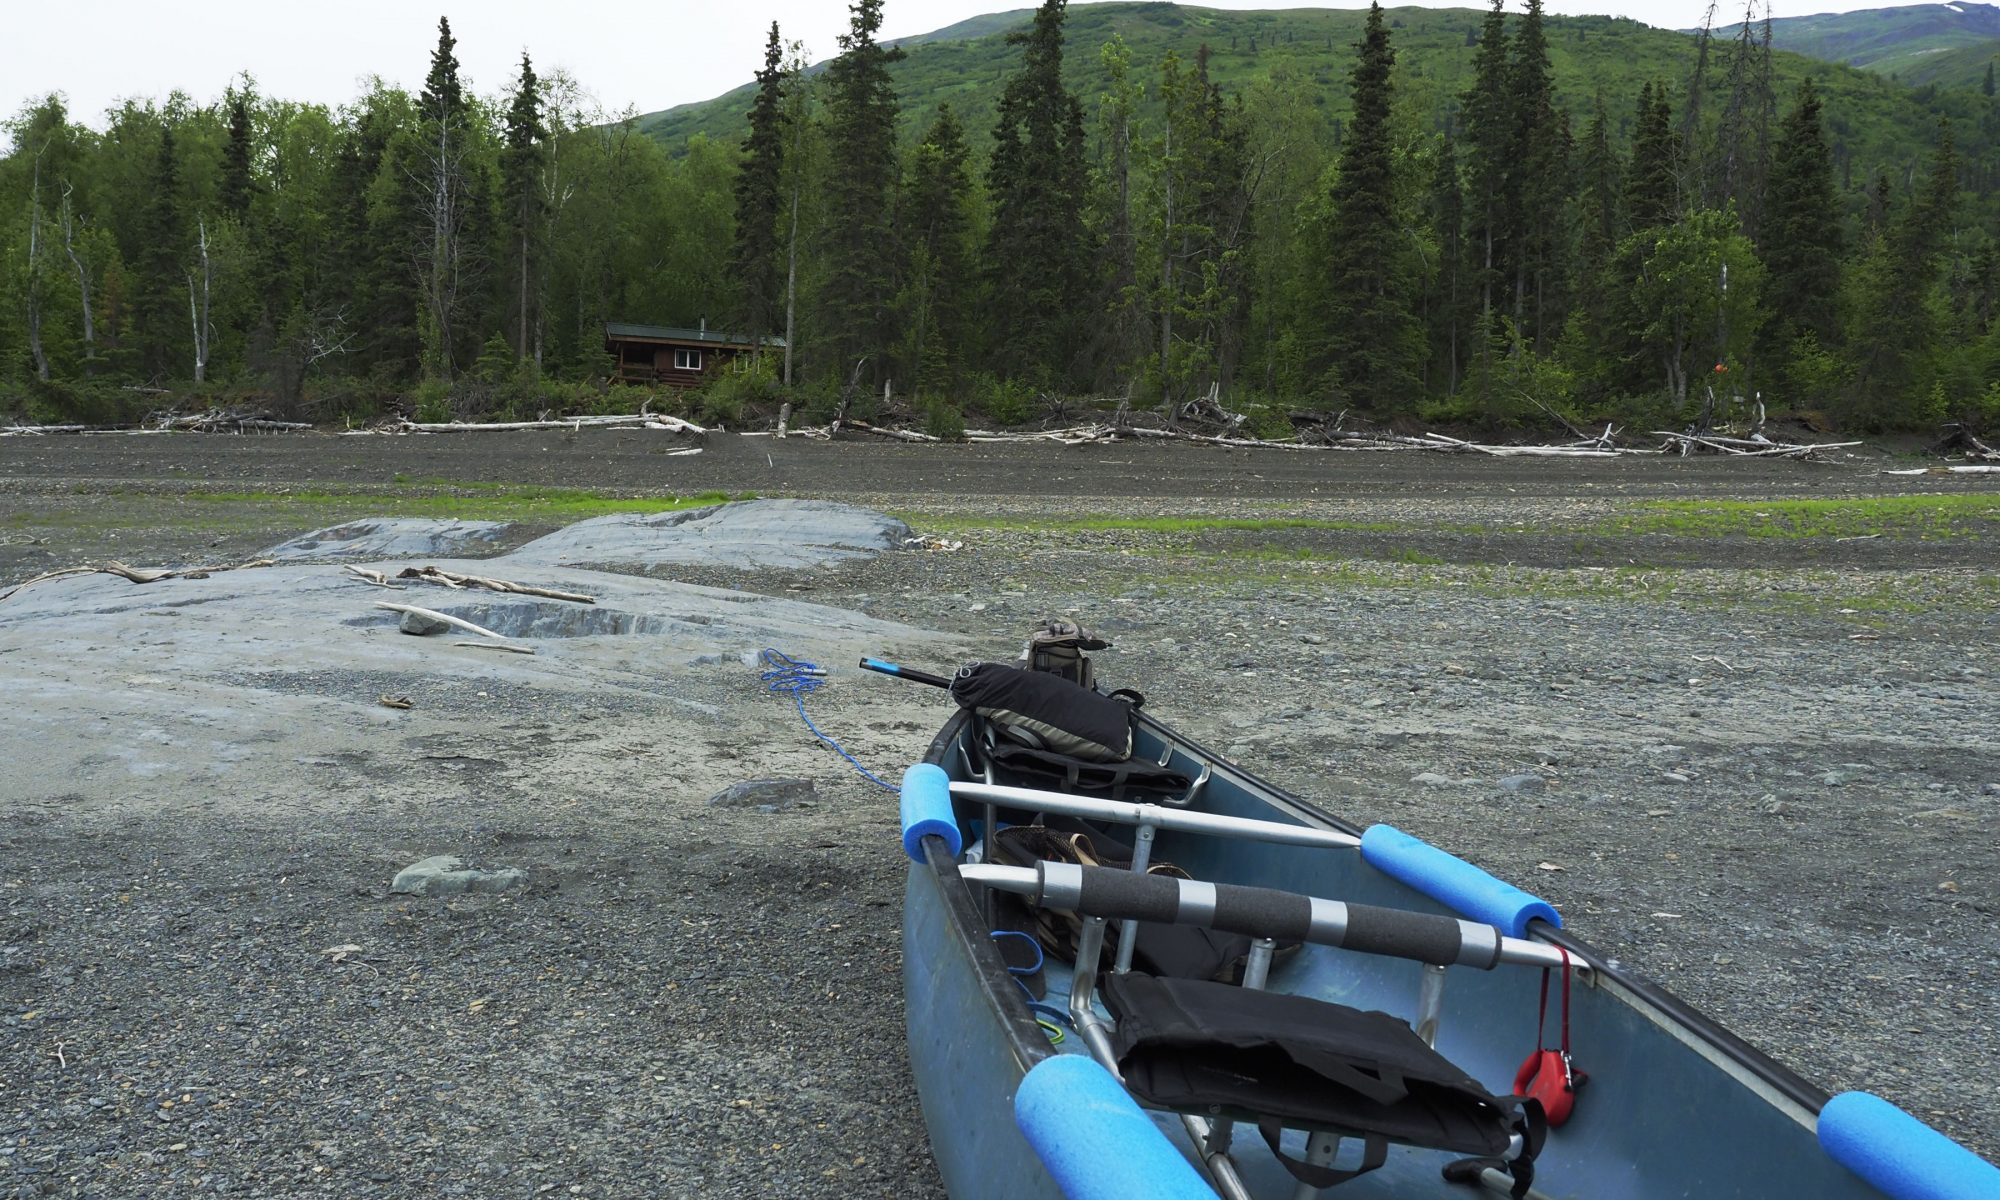 Canoe on rocky beach with cabin in the background